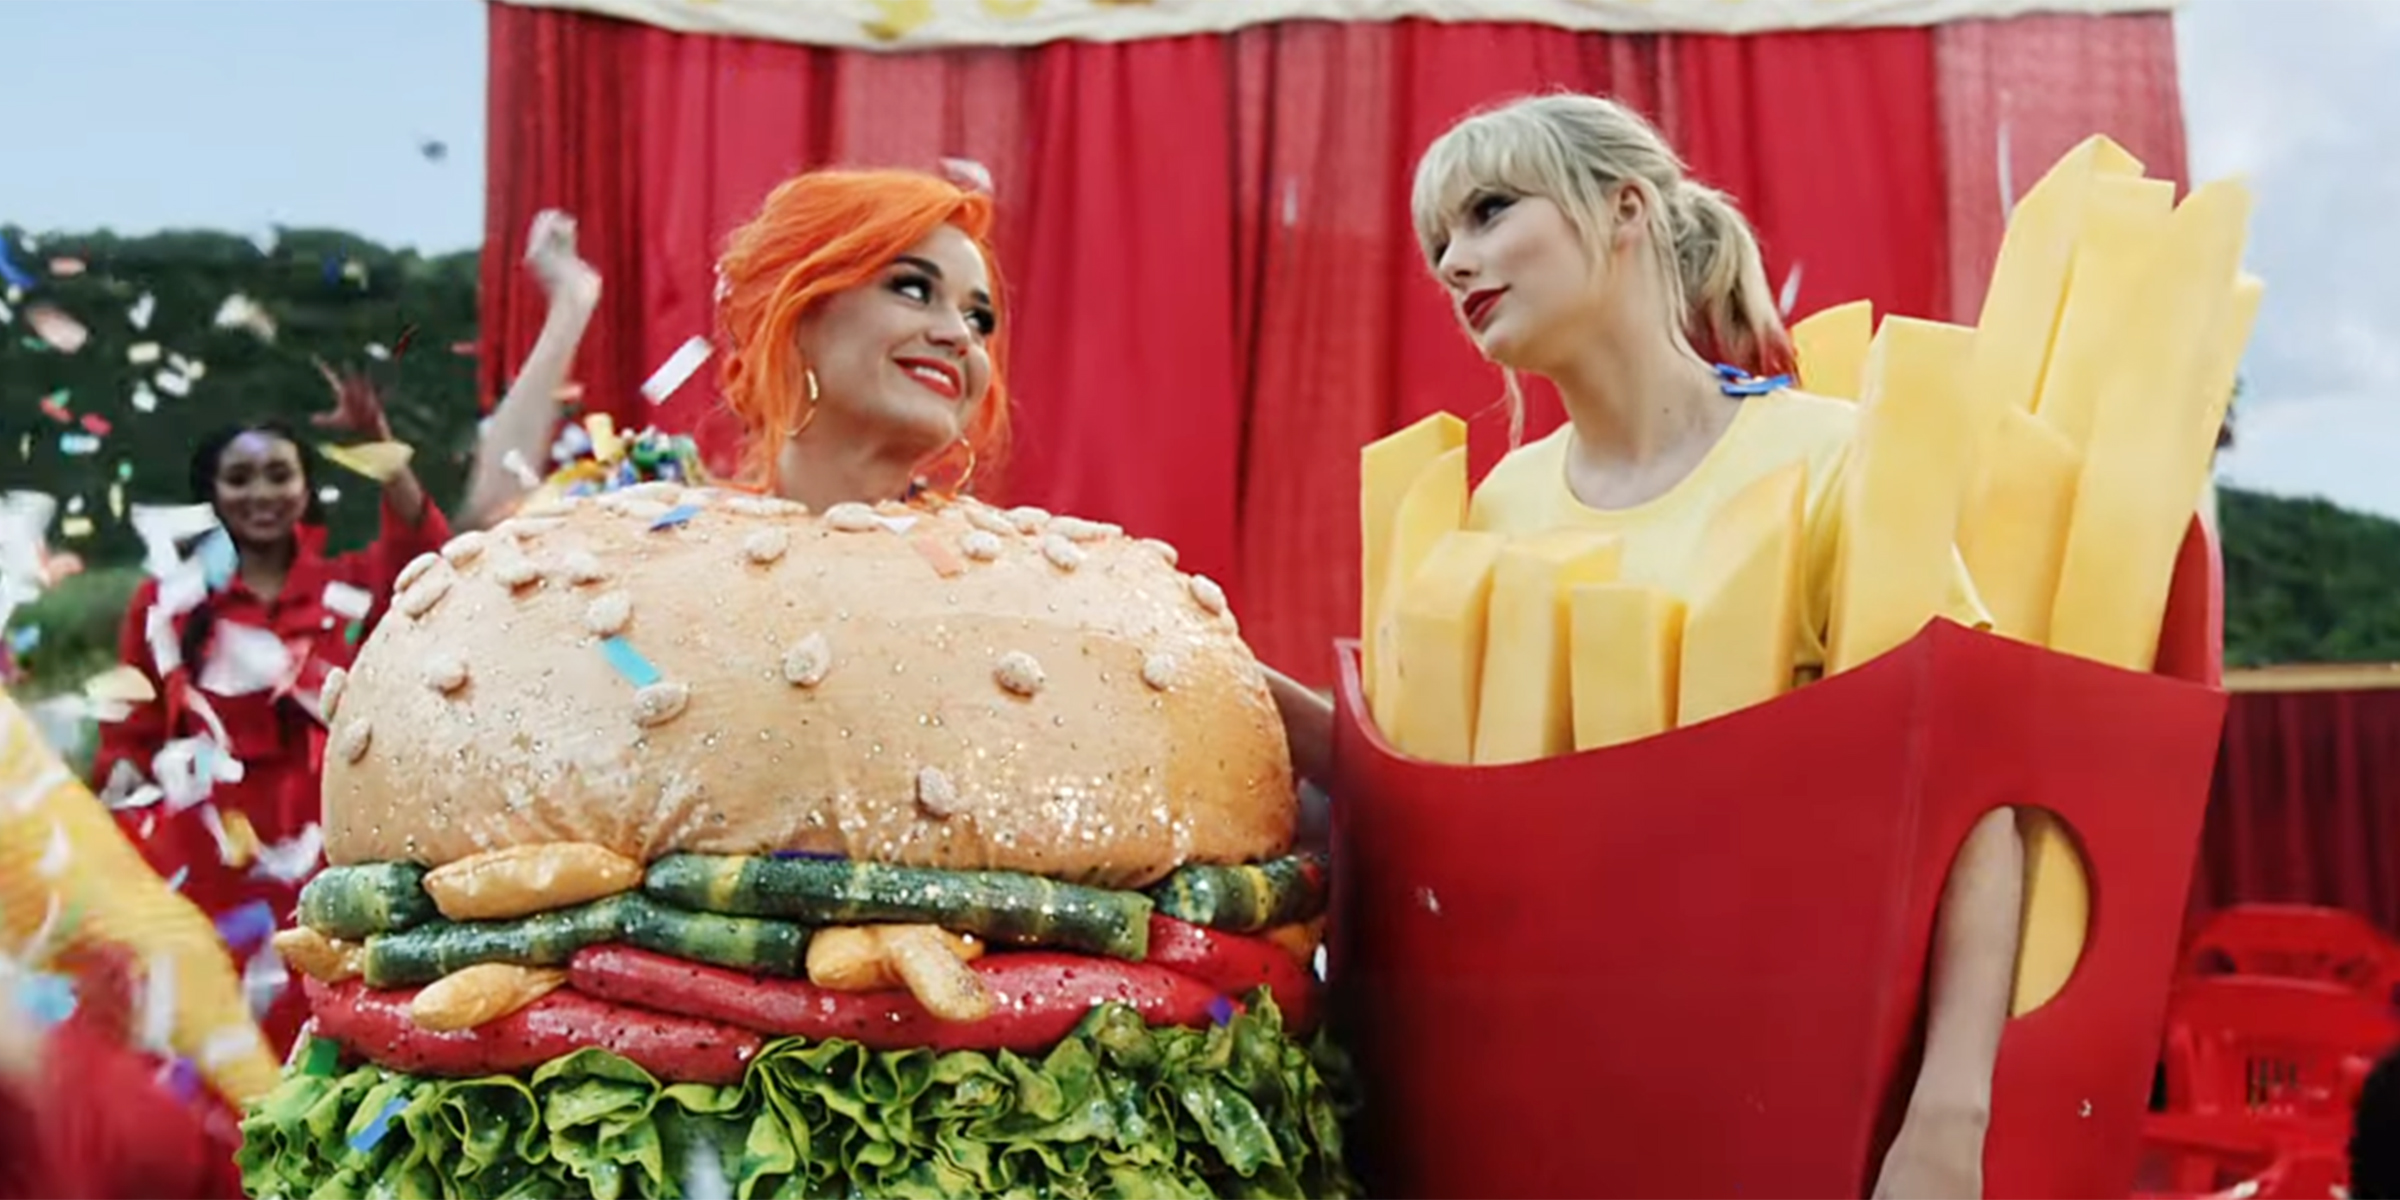 Taylor Swift And Katy Perry Put Their Feud To Rest In New Music Video